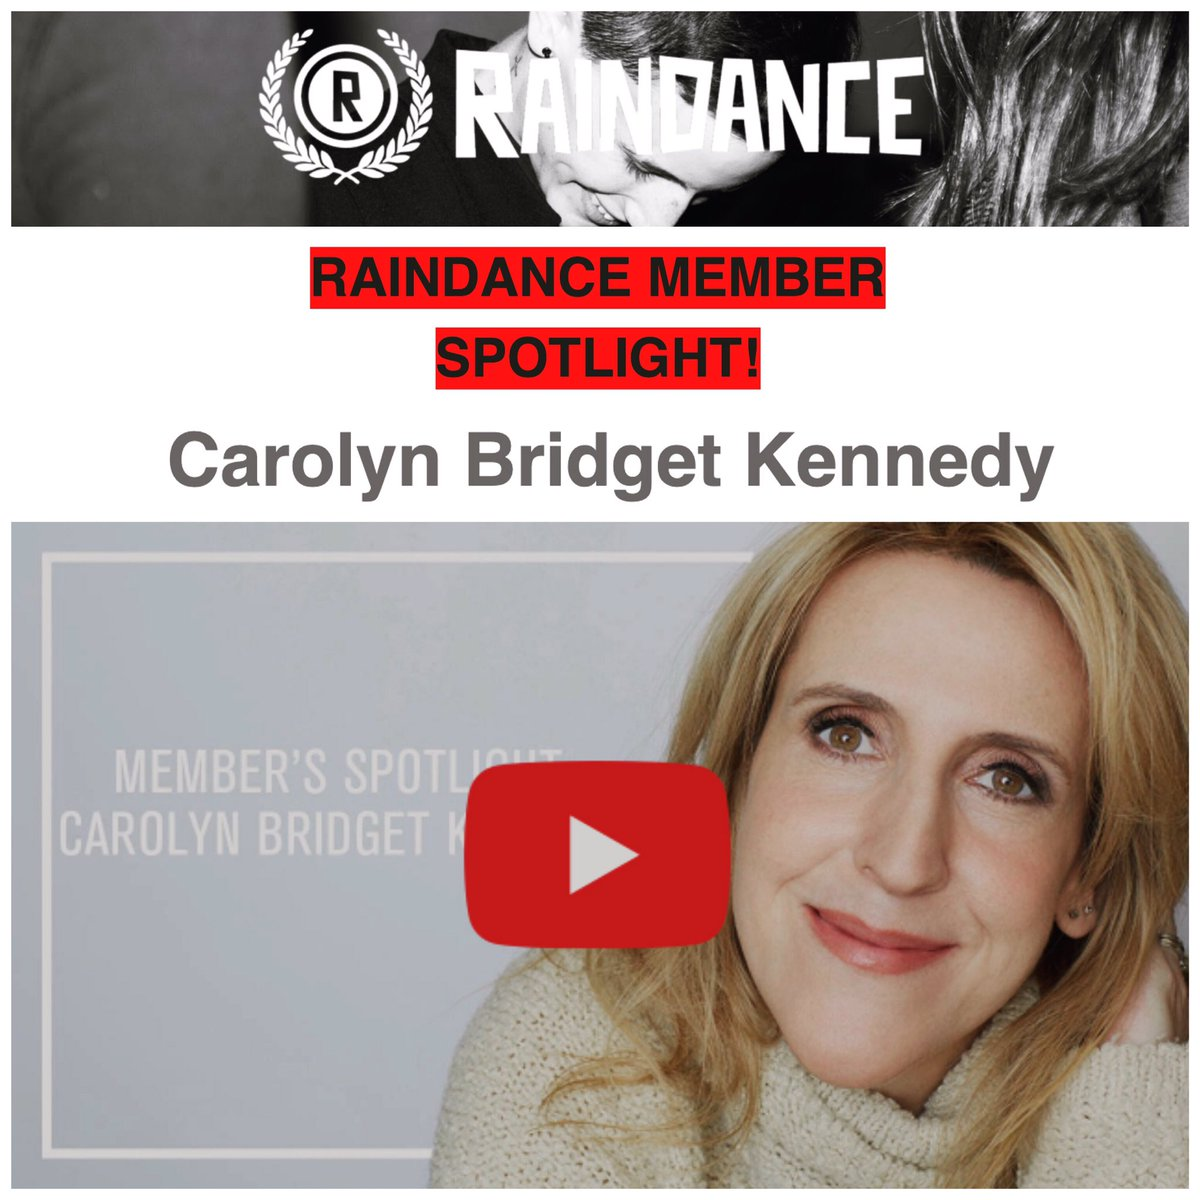 Thank you @Raindance for featuring me in the Member Spotlight of your newsletter!  #actor #filmmaker #writer #actorslife #raindance #losangelespic.twitter.com/0lChT05mh6